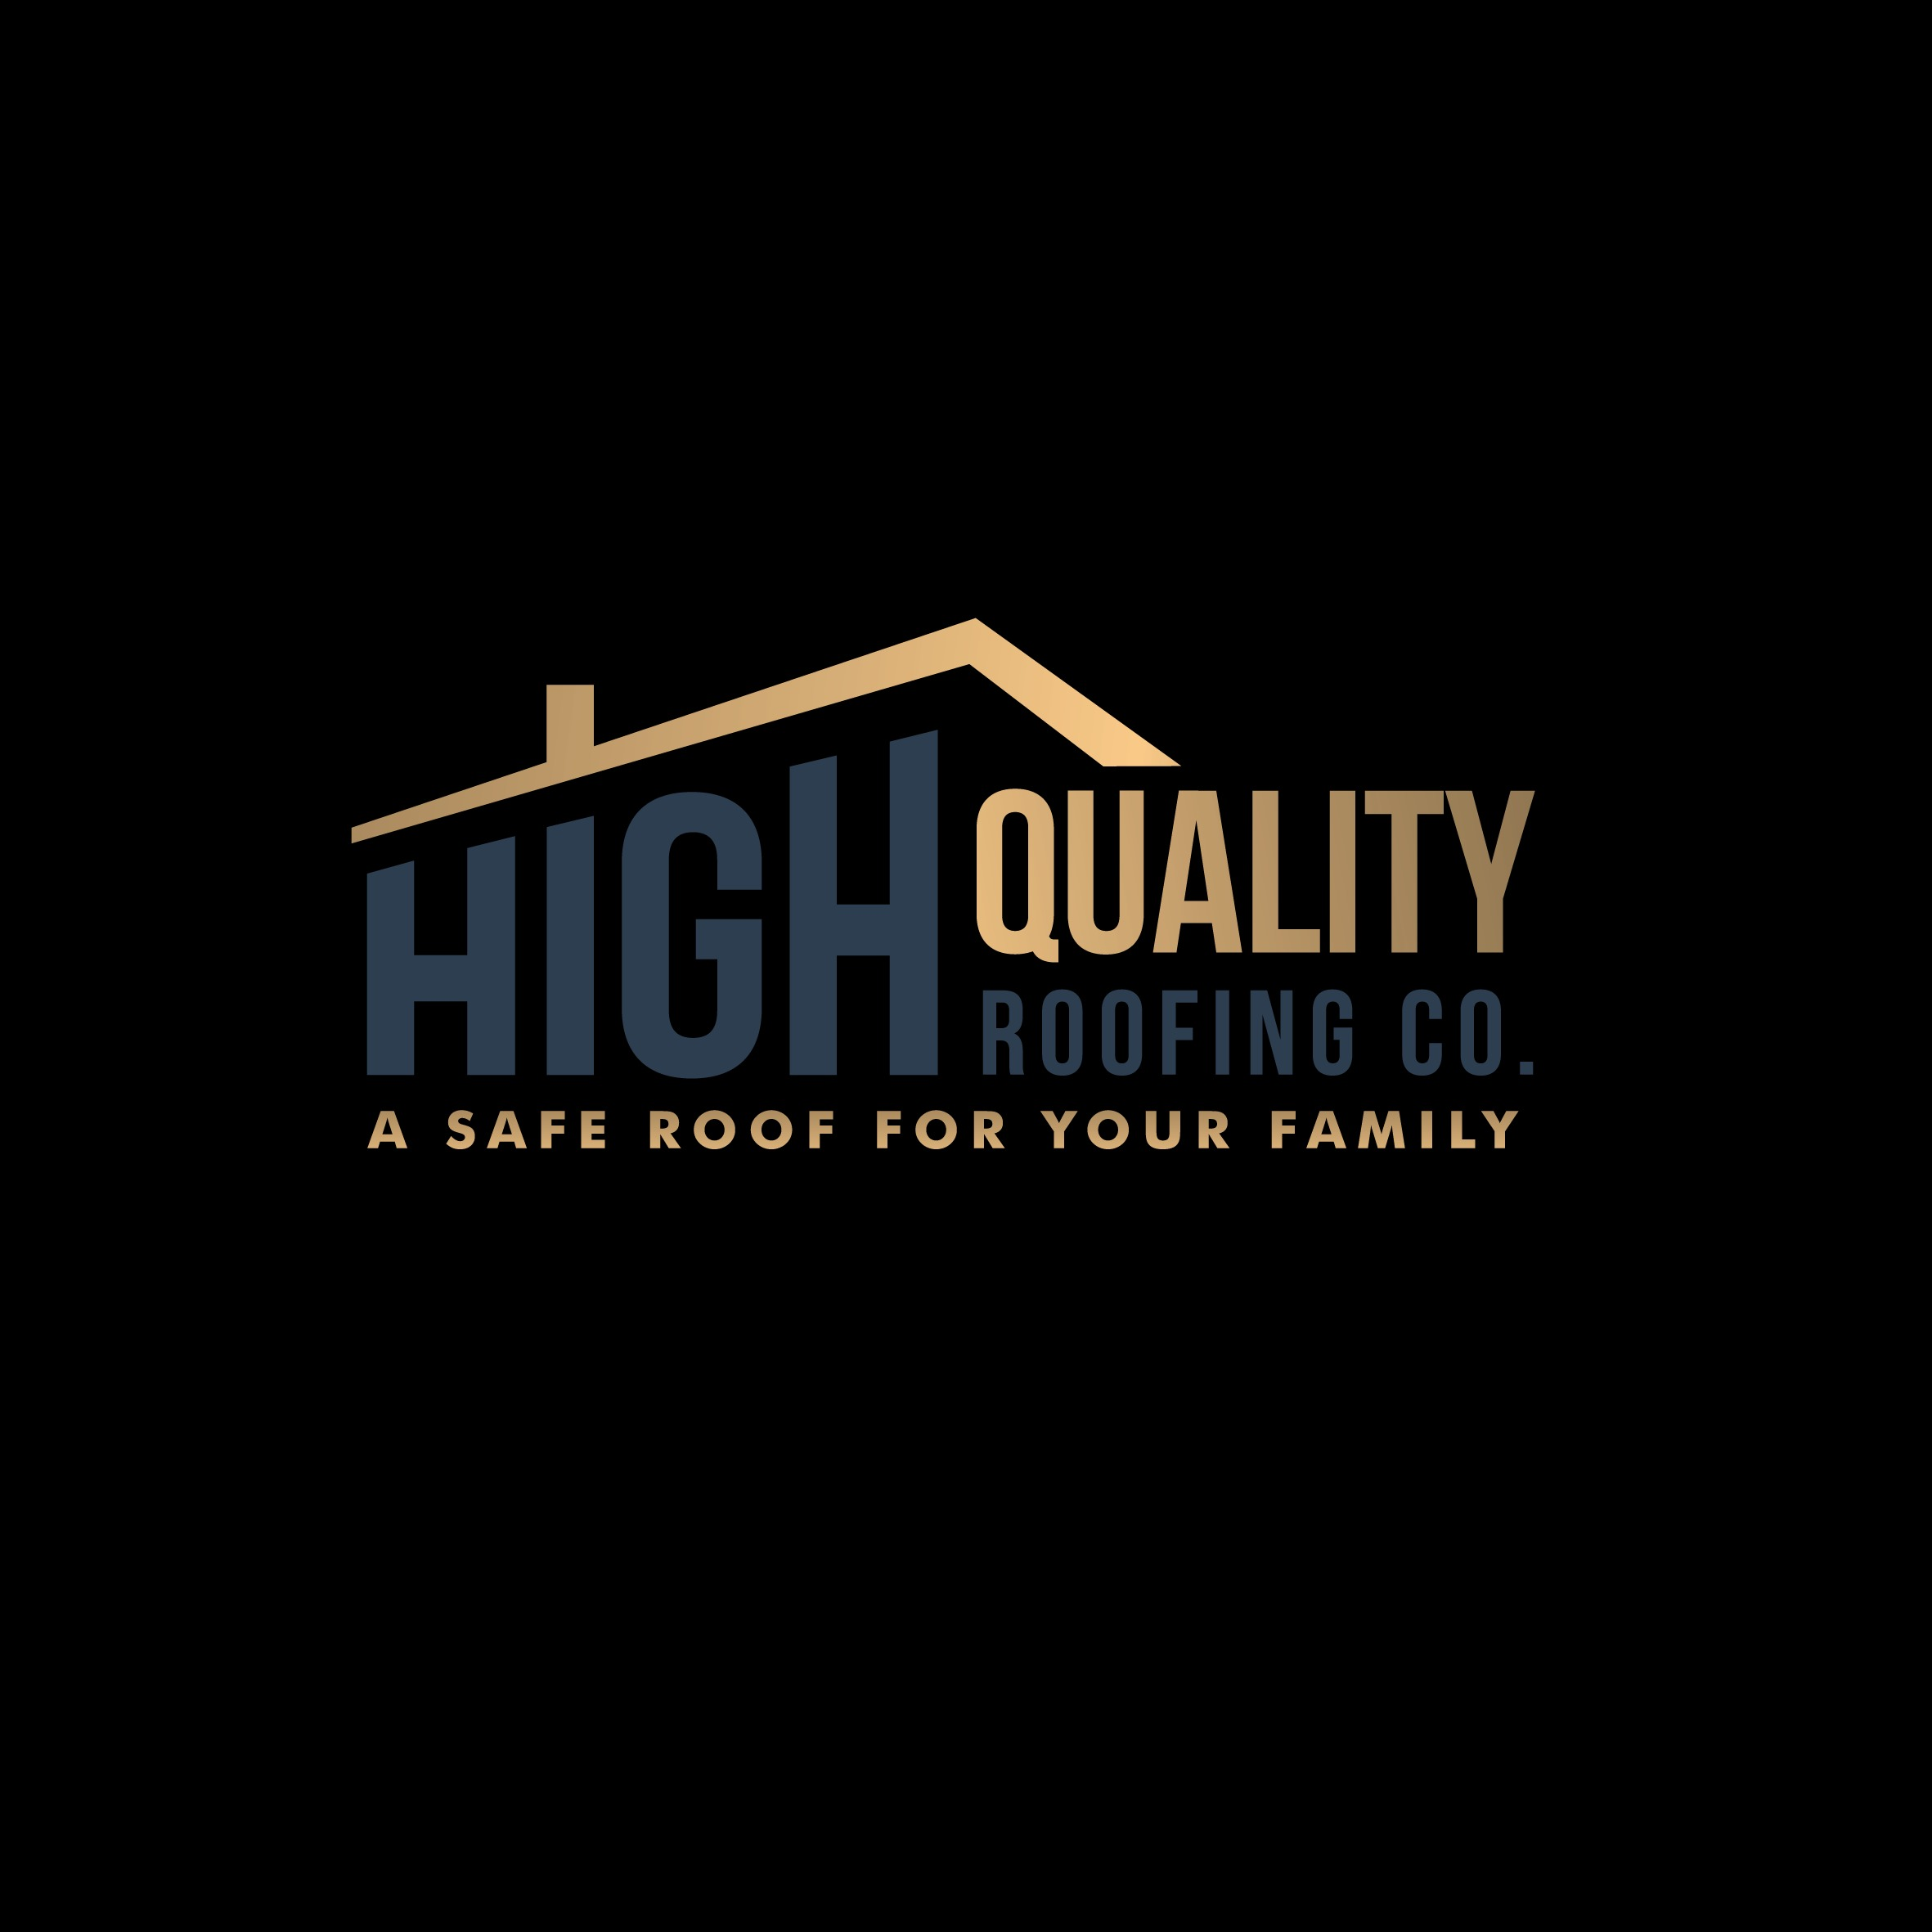 High Quality Roofing Co.